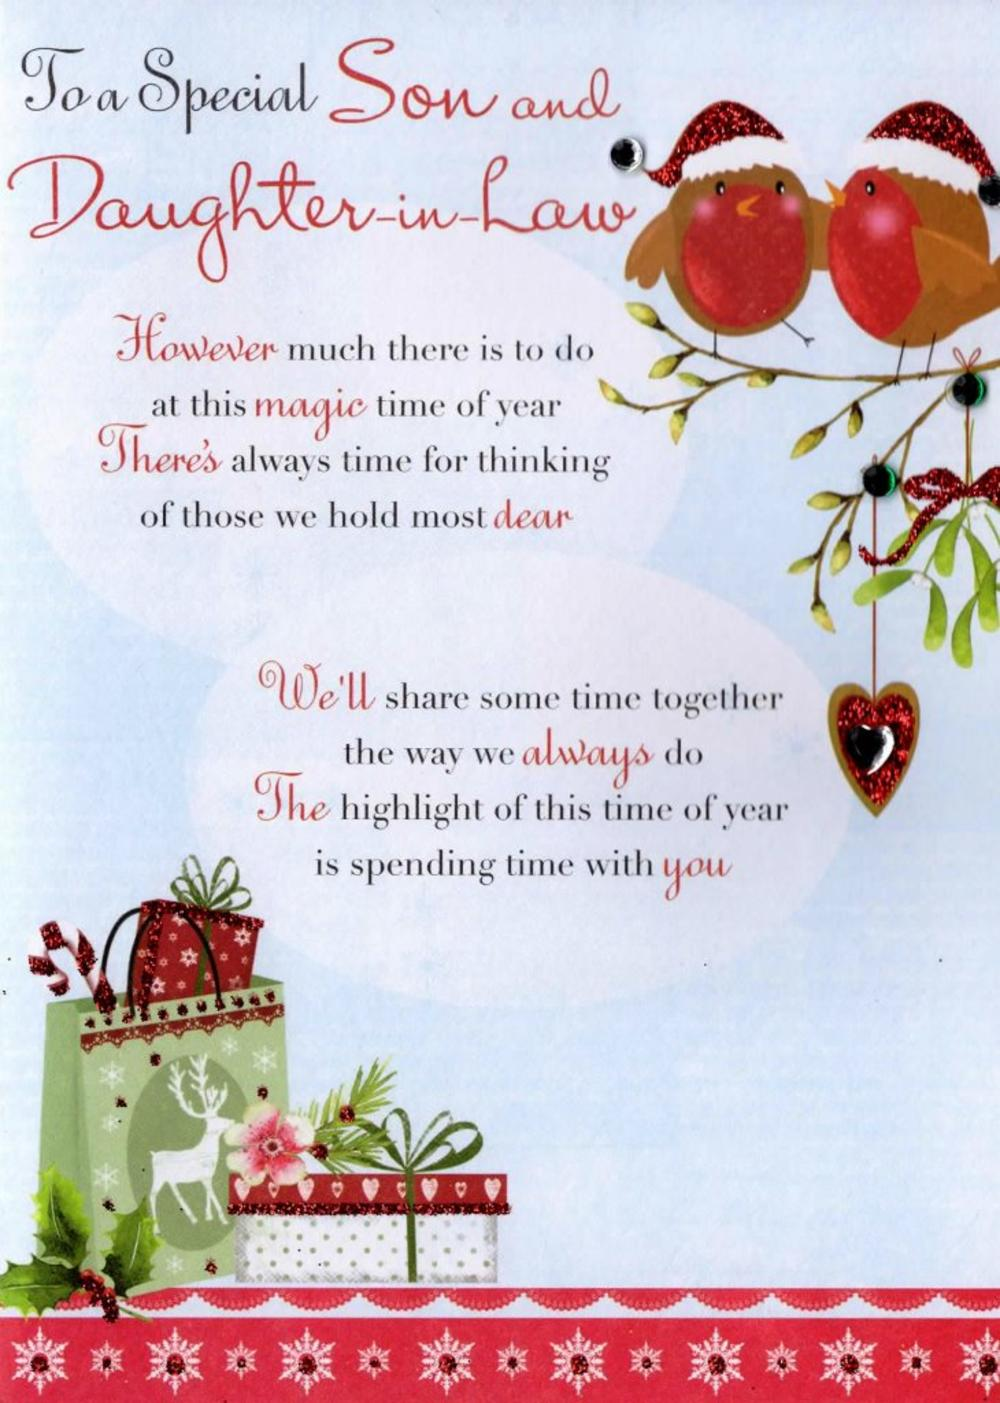 Son Amp Daughter In Law Christmas Greeting Card